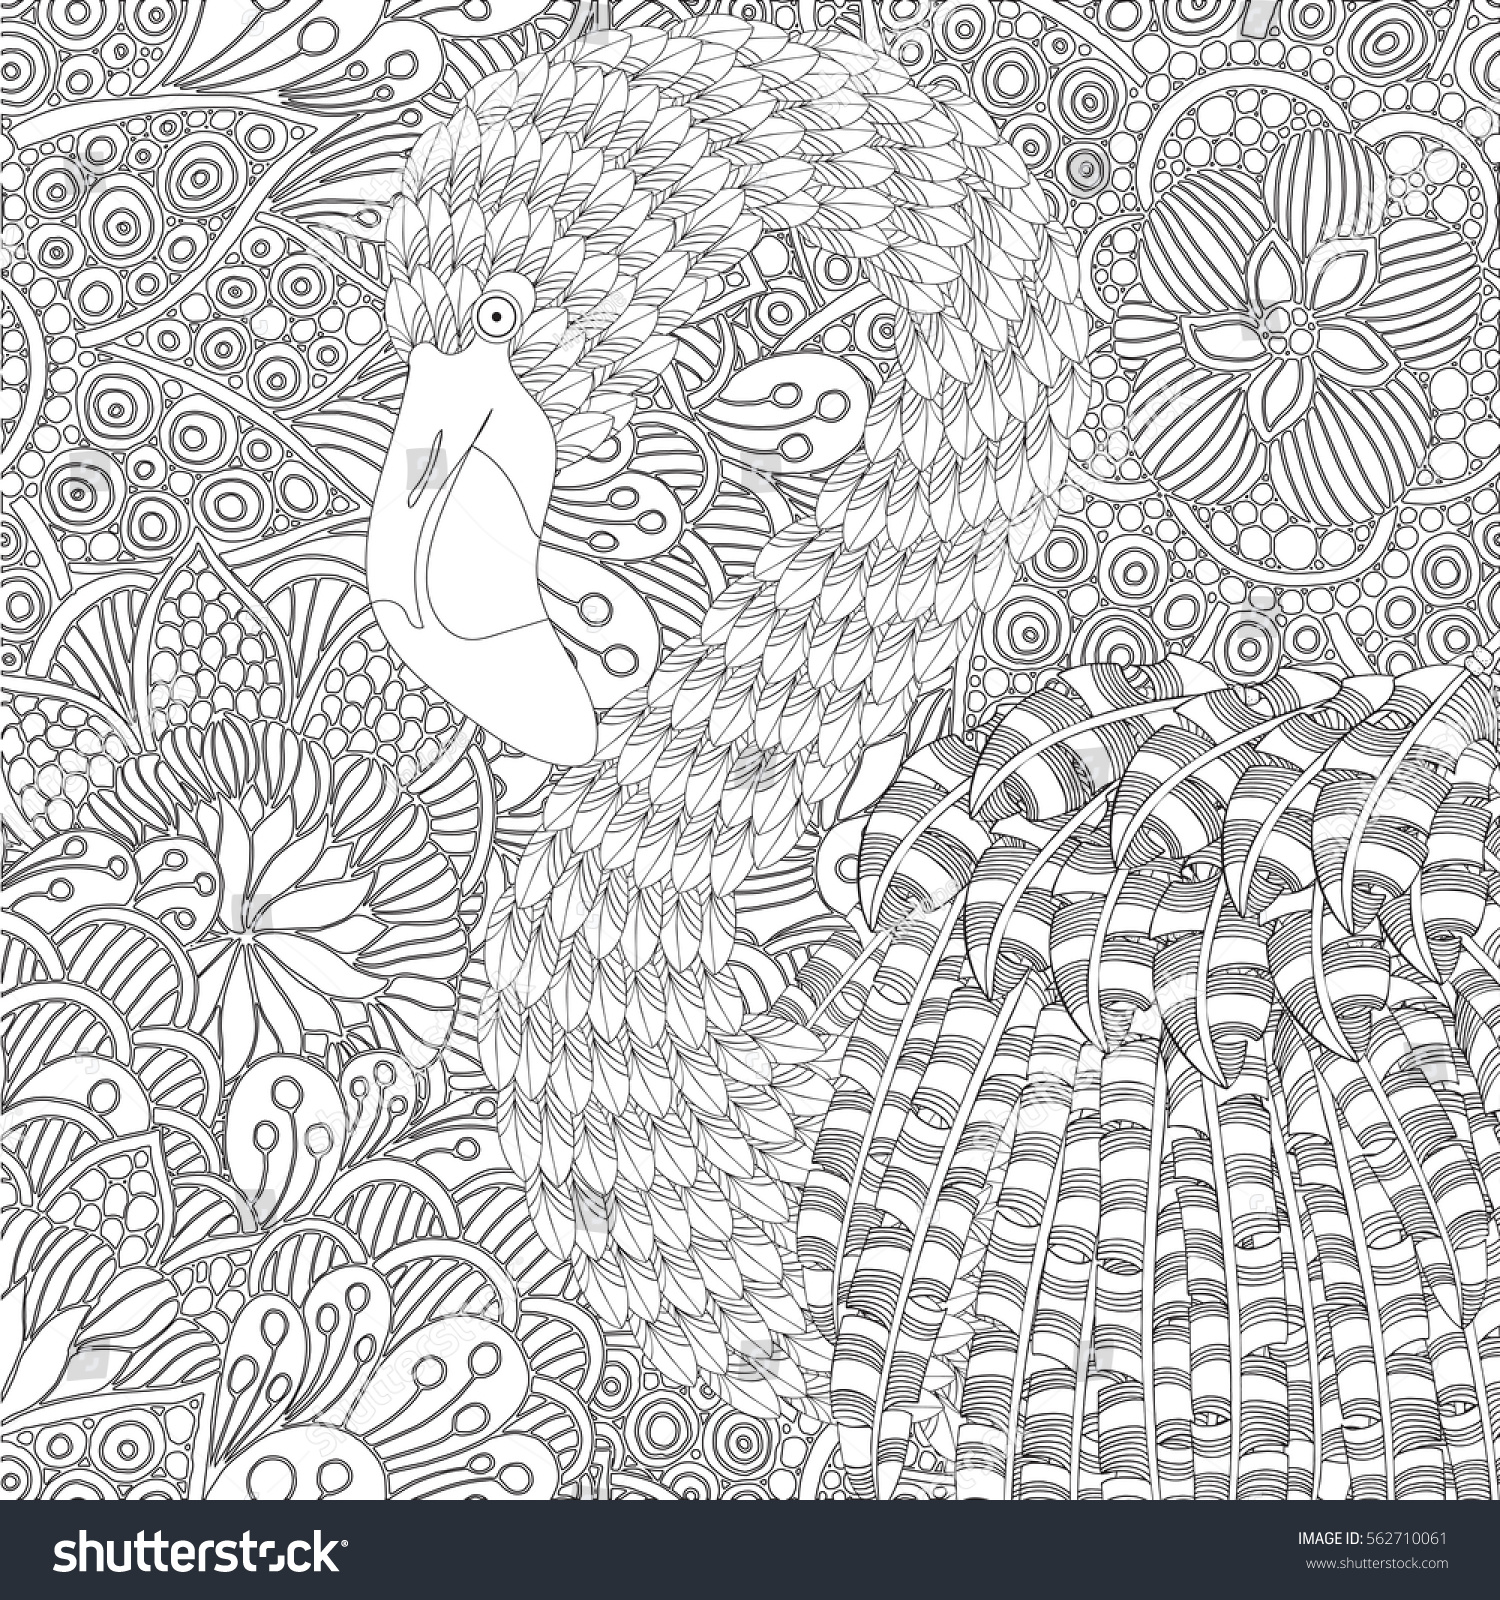 Fantastical Bird Coloring Book Amazing Flamingo With Feathers And Patterns Plumage Black